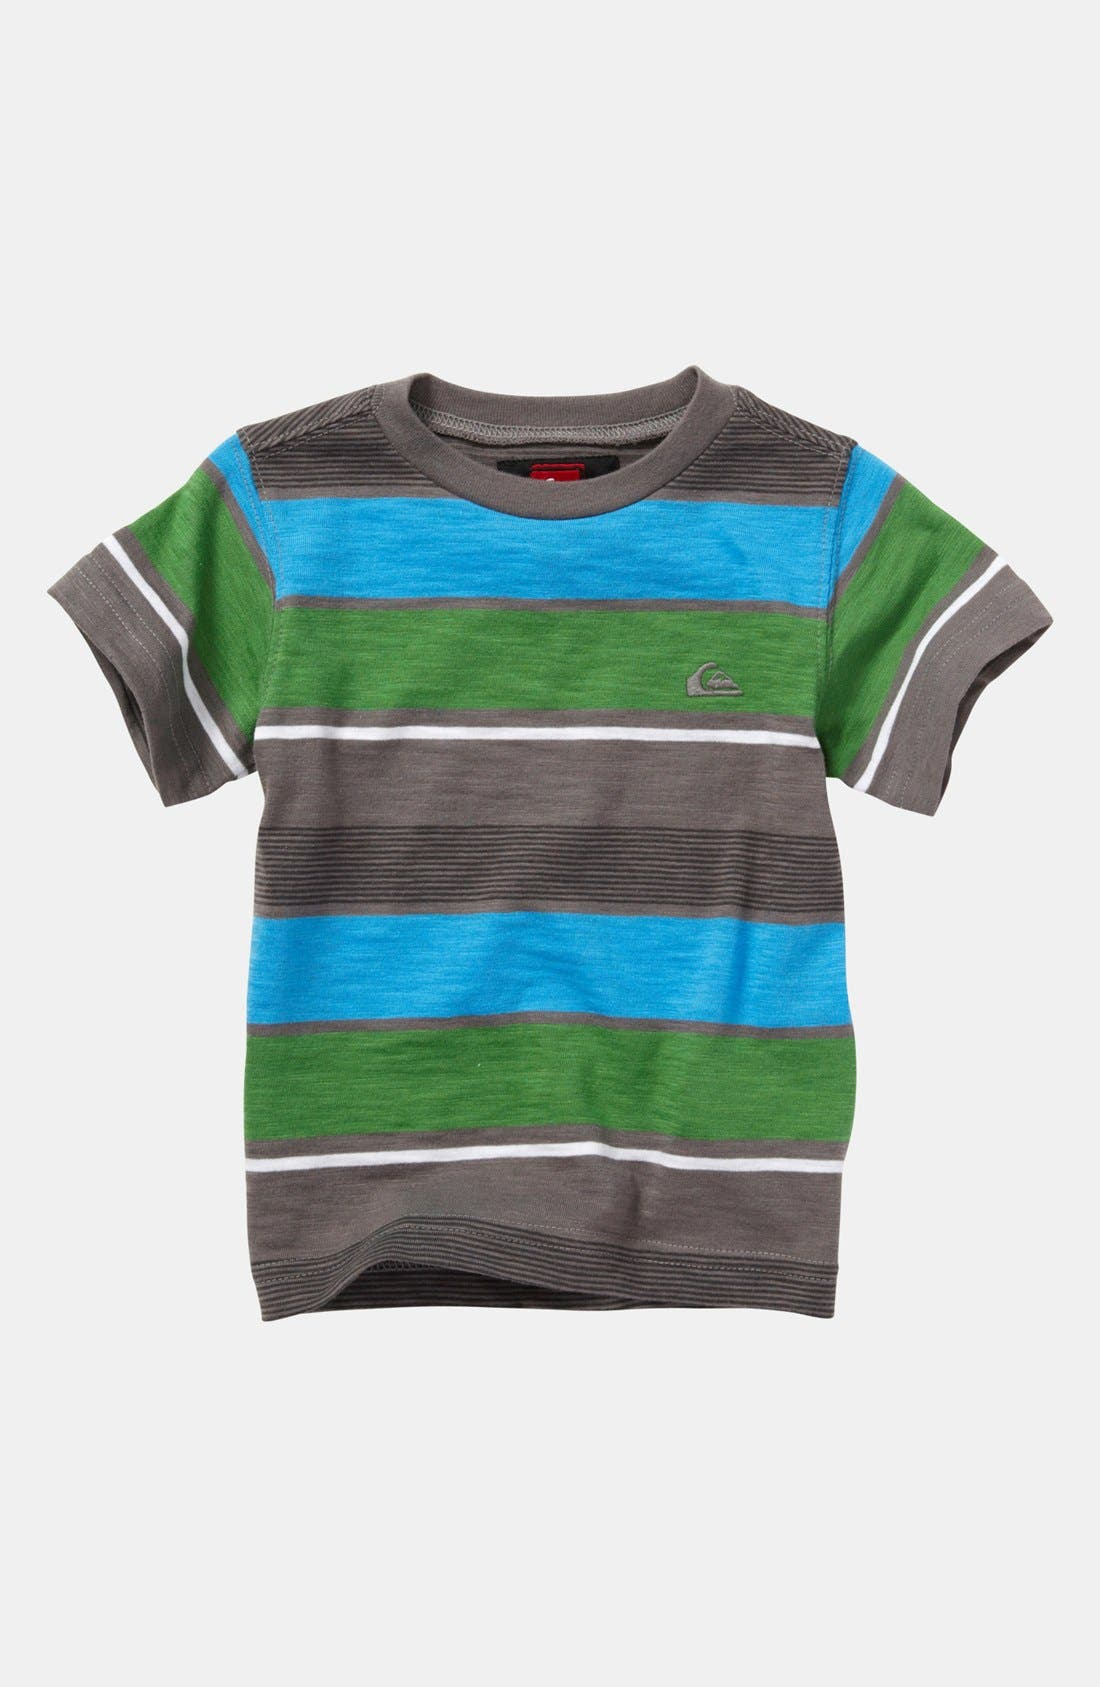 Alternate Image 1 Selected - Quiksilver 'Brookhurst' T-Shirt (Baby)